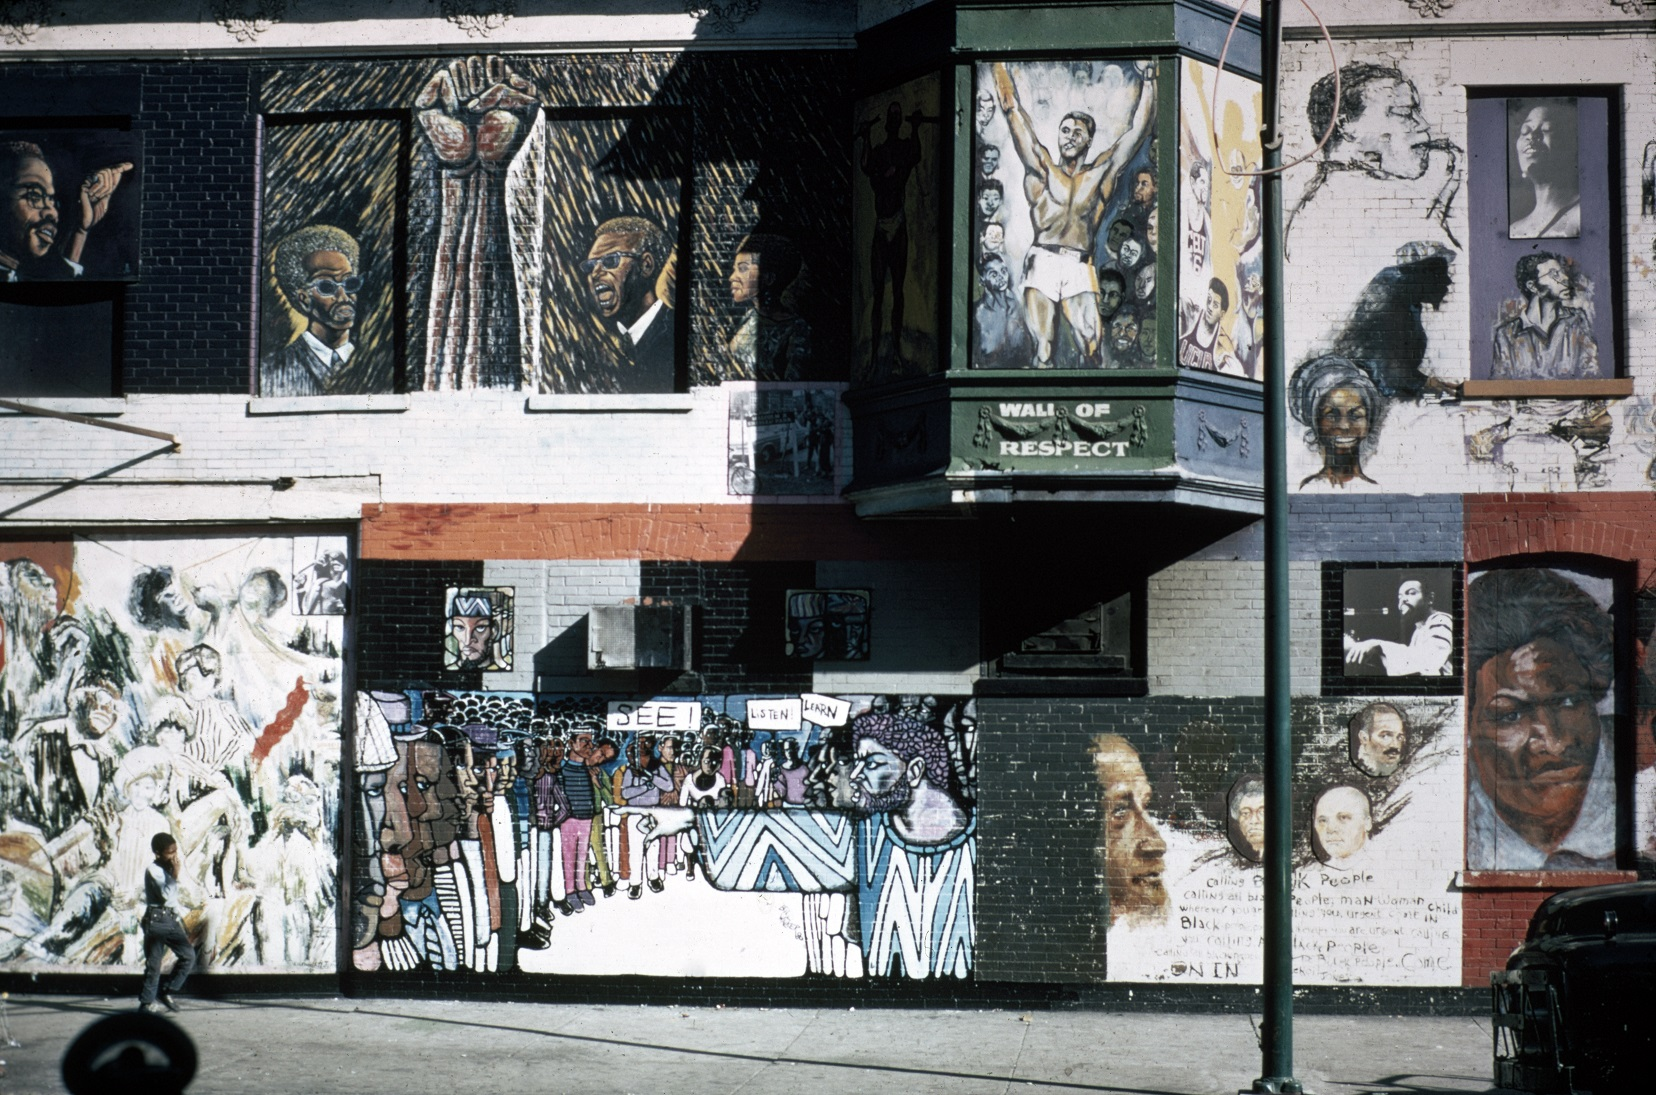 OBAC Visual Artists Workshop and others,  Wall of Respect  (detail showing Eda's Black Power fist), 1968 (now destroyed). Photograph: Georg Stahl Mural Collection, University of Chicago Library